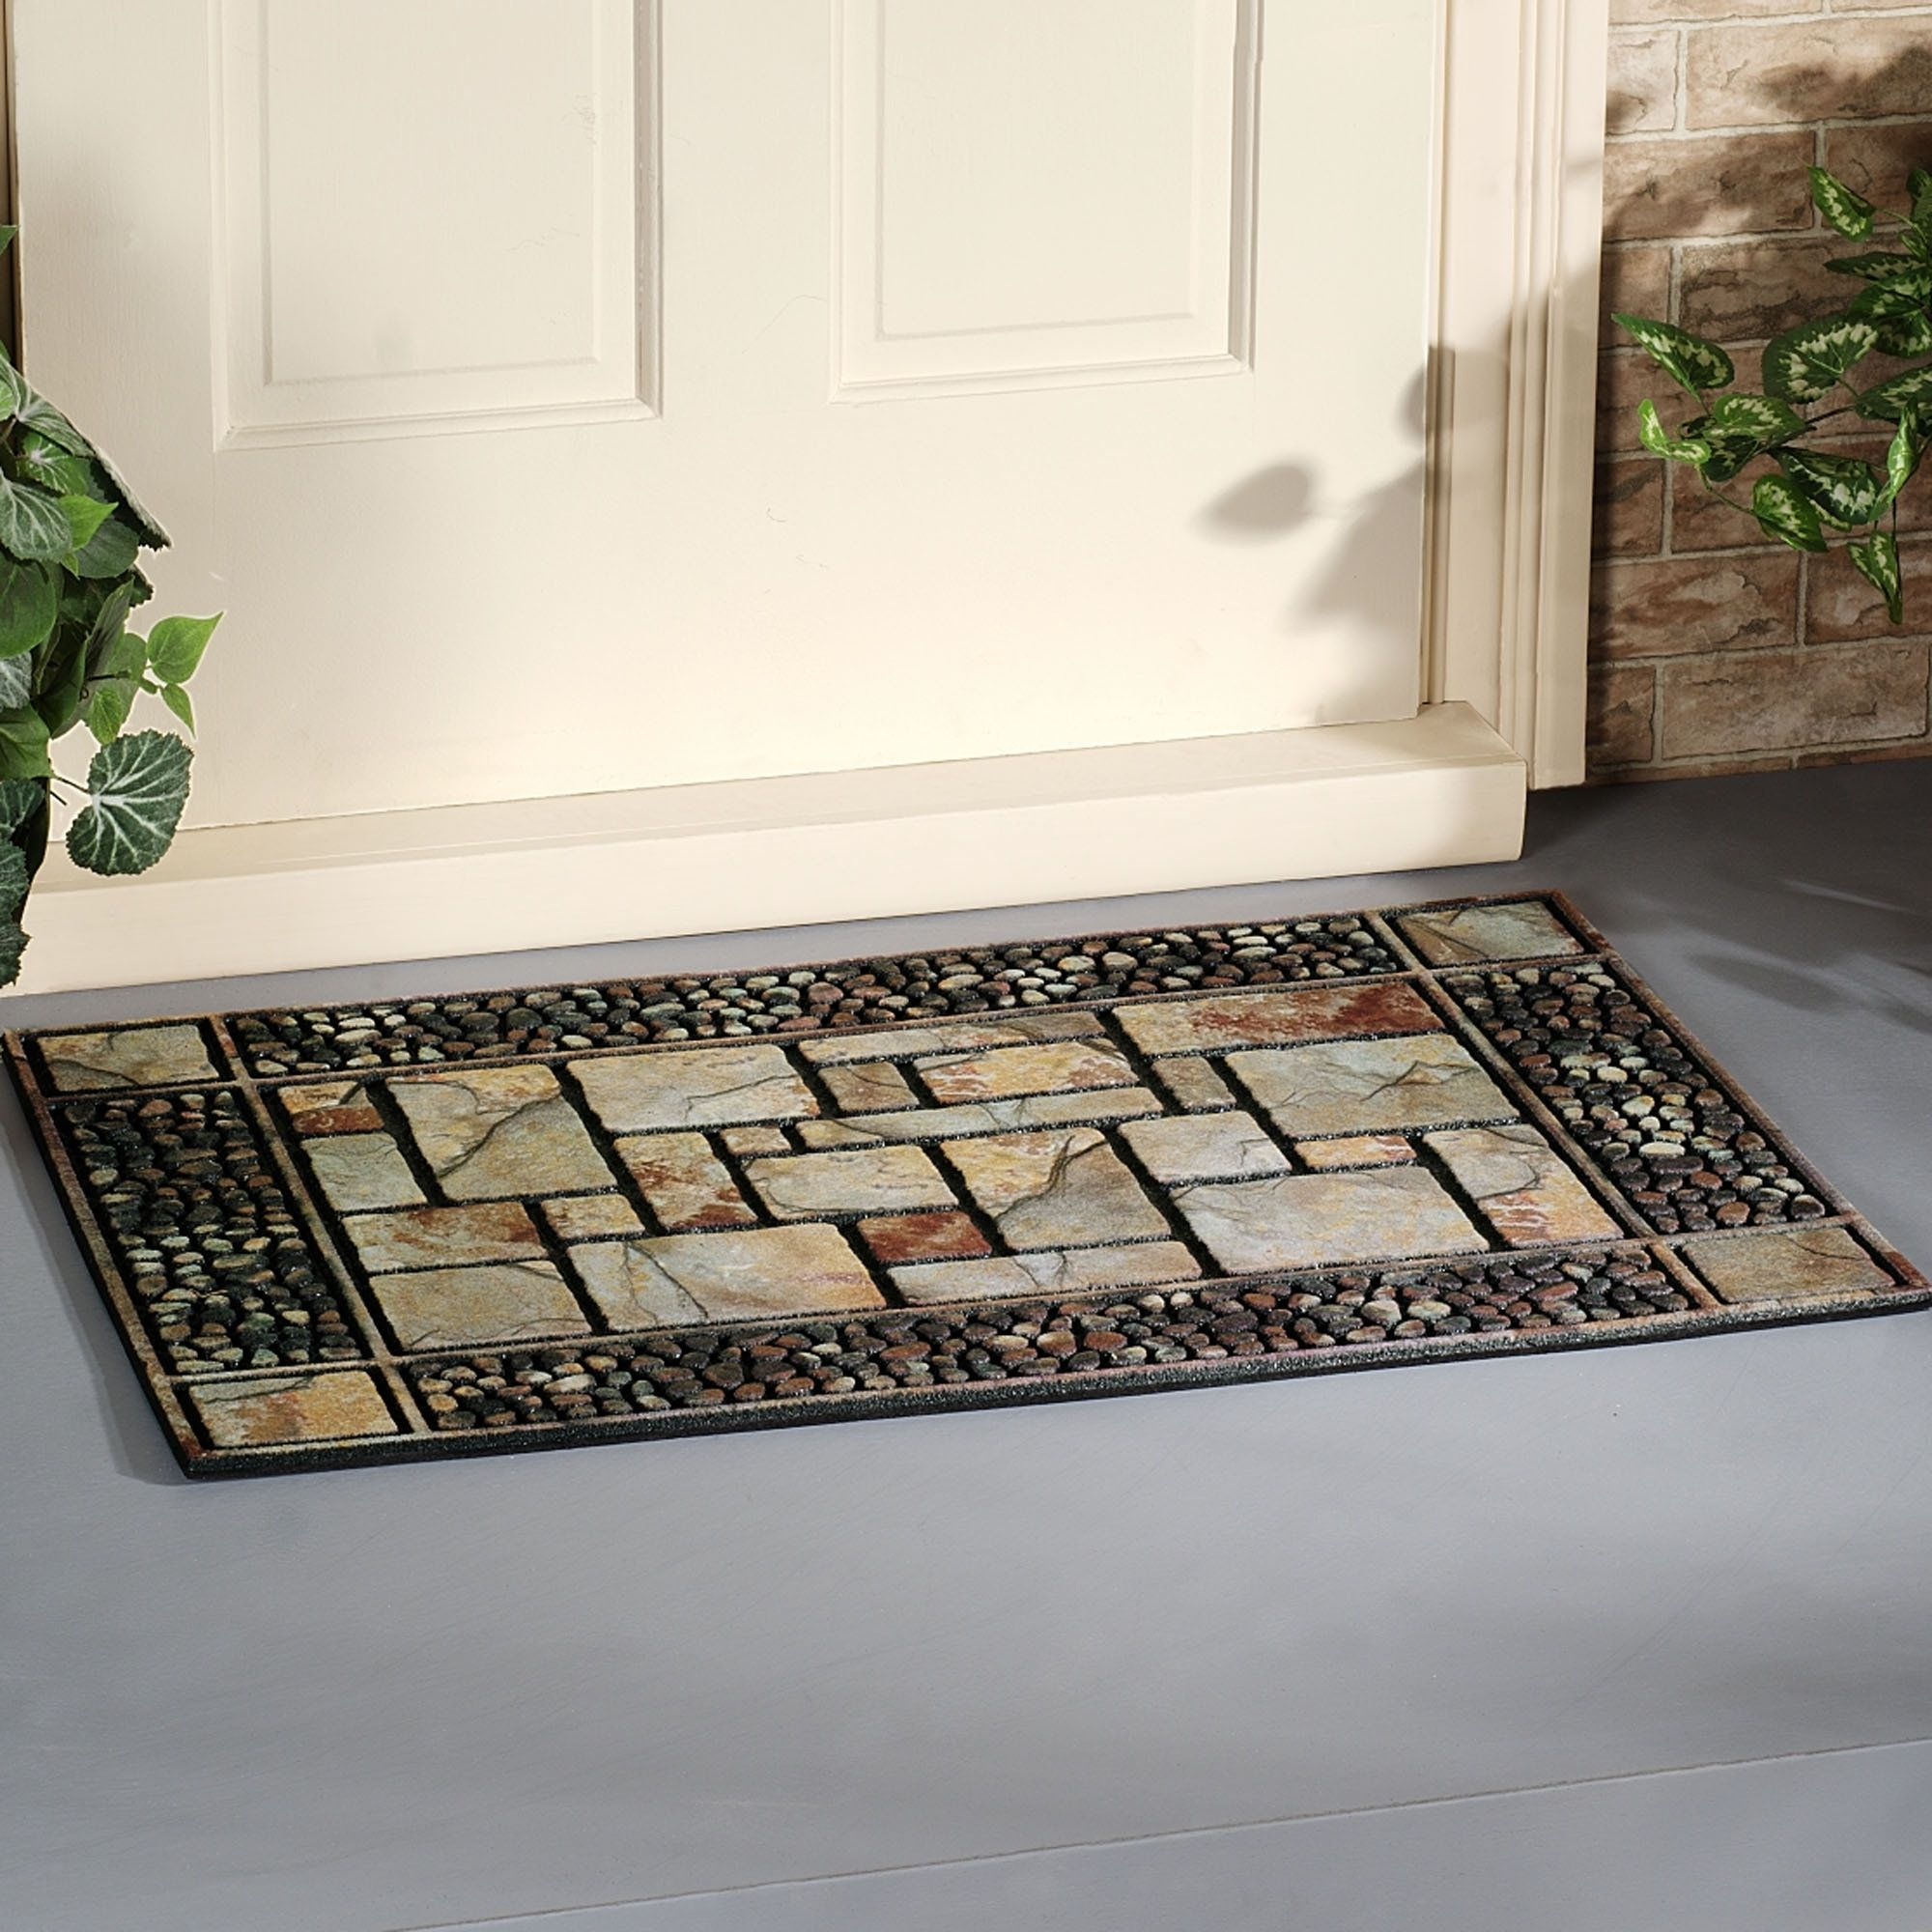 front mats comely mesmerizing dirty mat matcleaning dog coir for decoration door large accessories using porch welcome